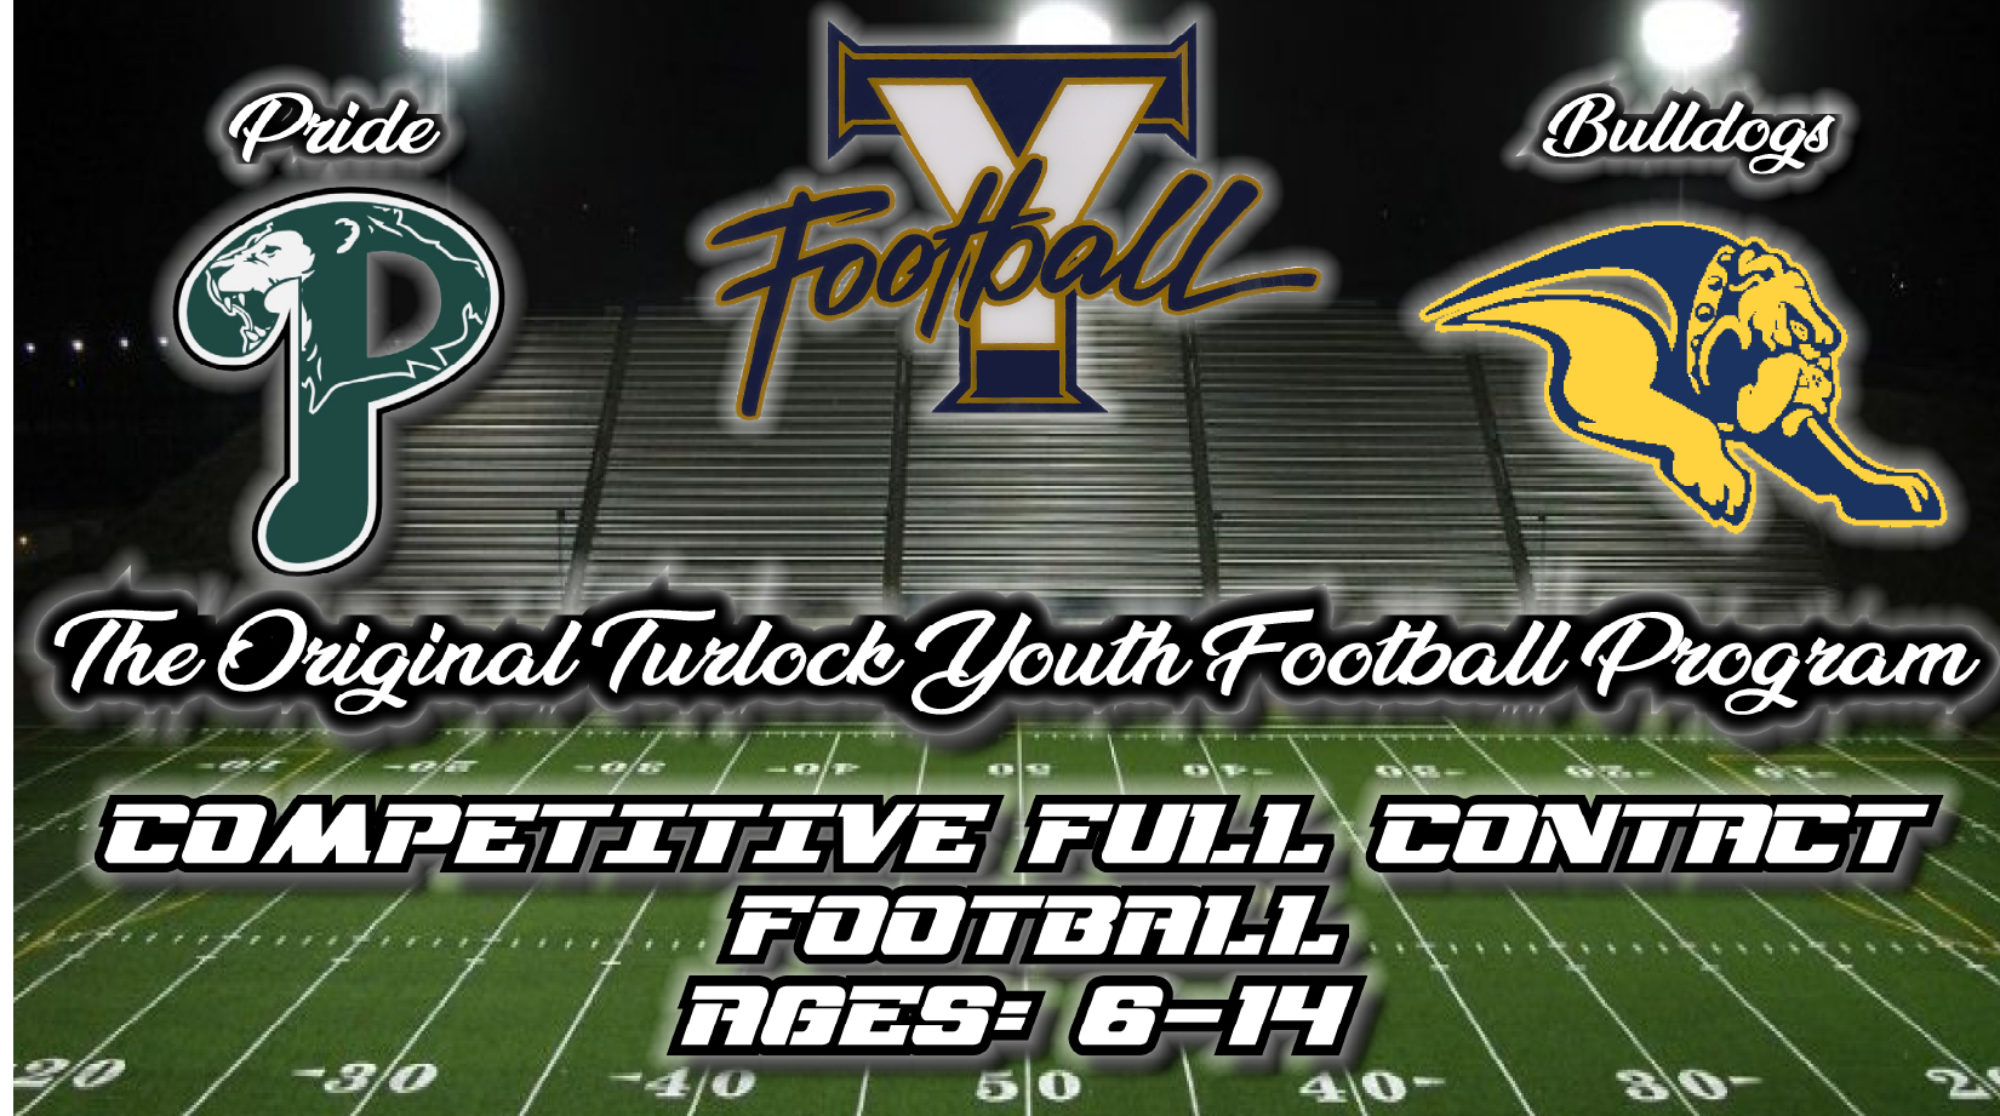 Turlock Youth Fooball